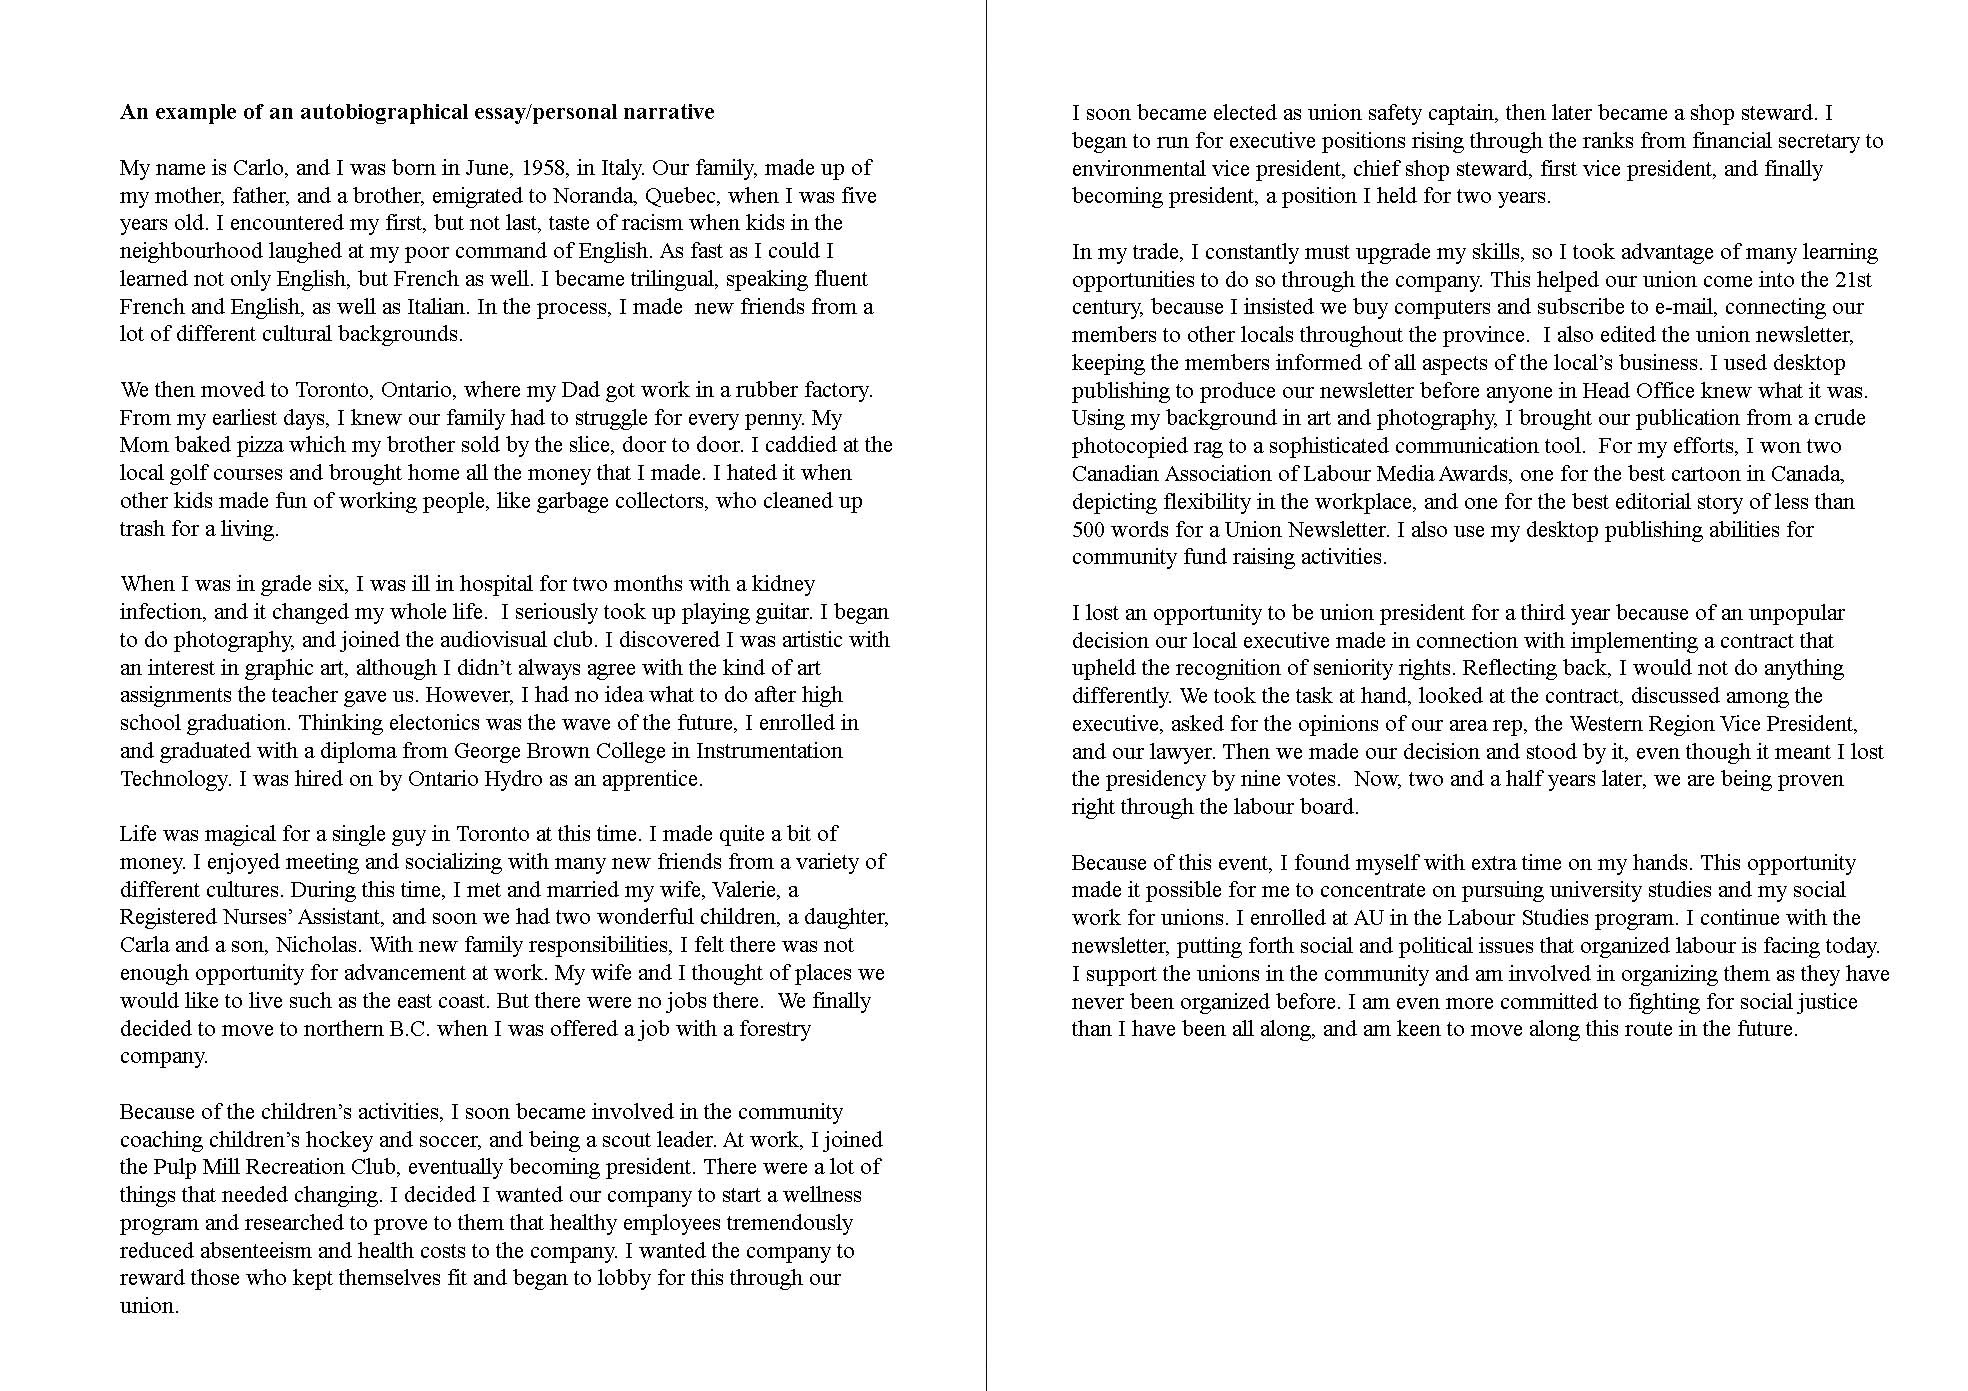 008 Essay Example Autobiographical Sample Unforgettable Biography About Myself Elementary Self Full